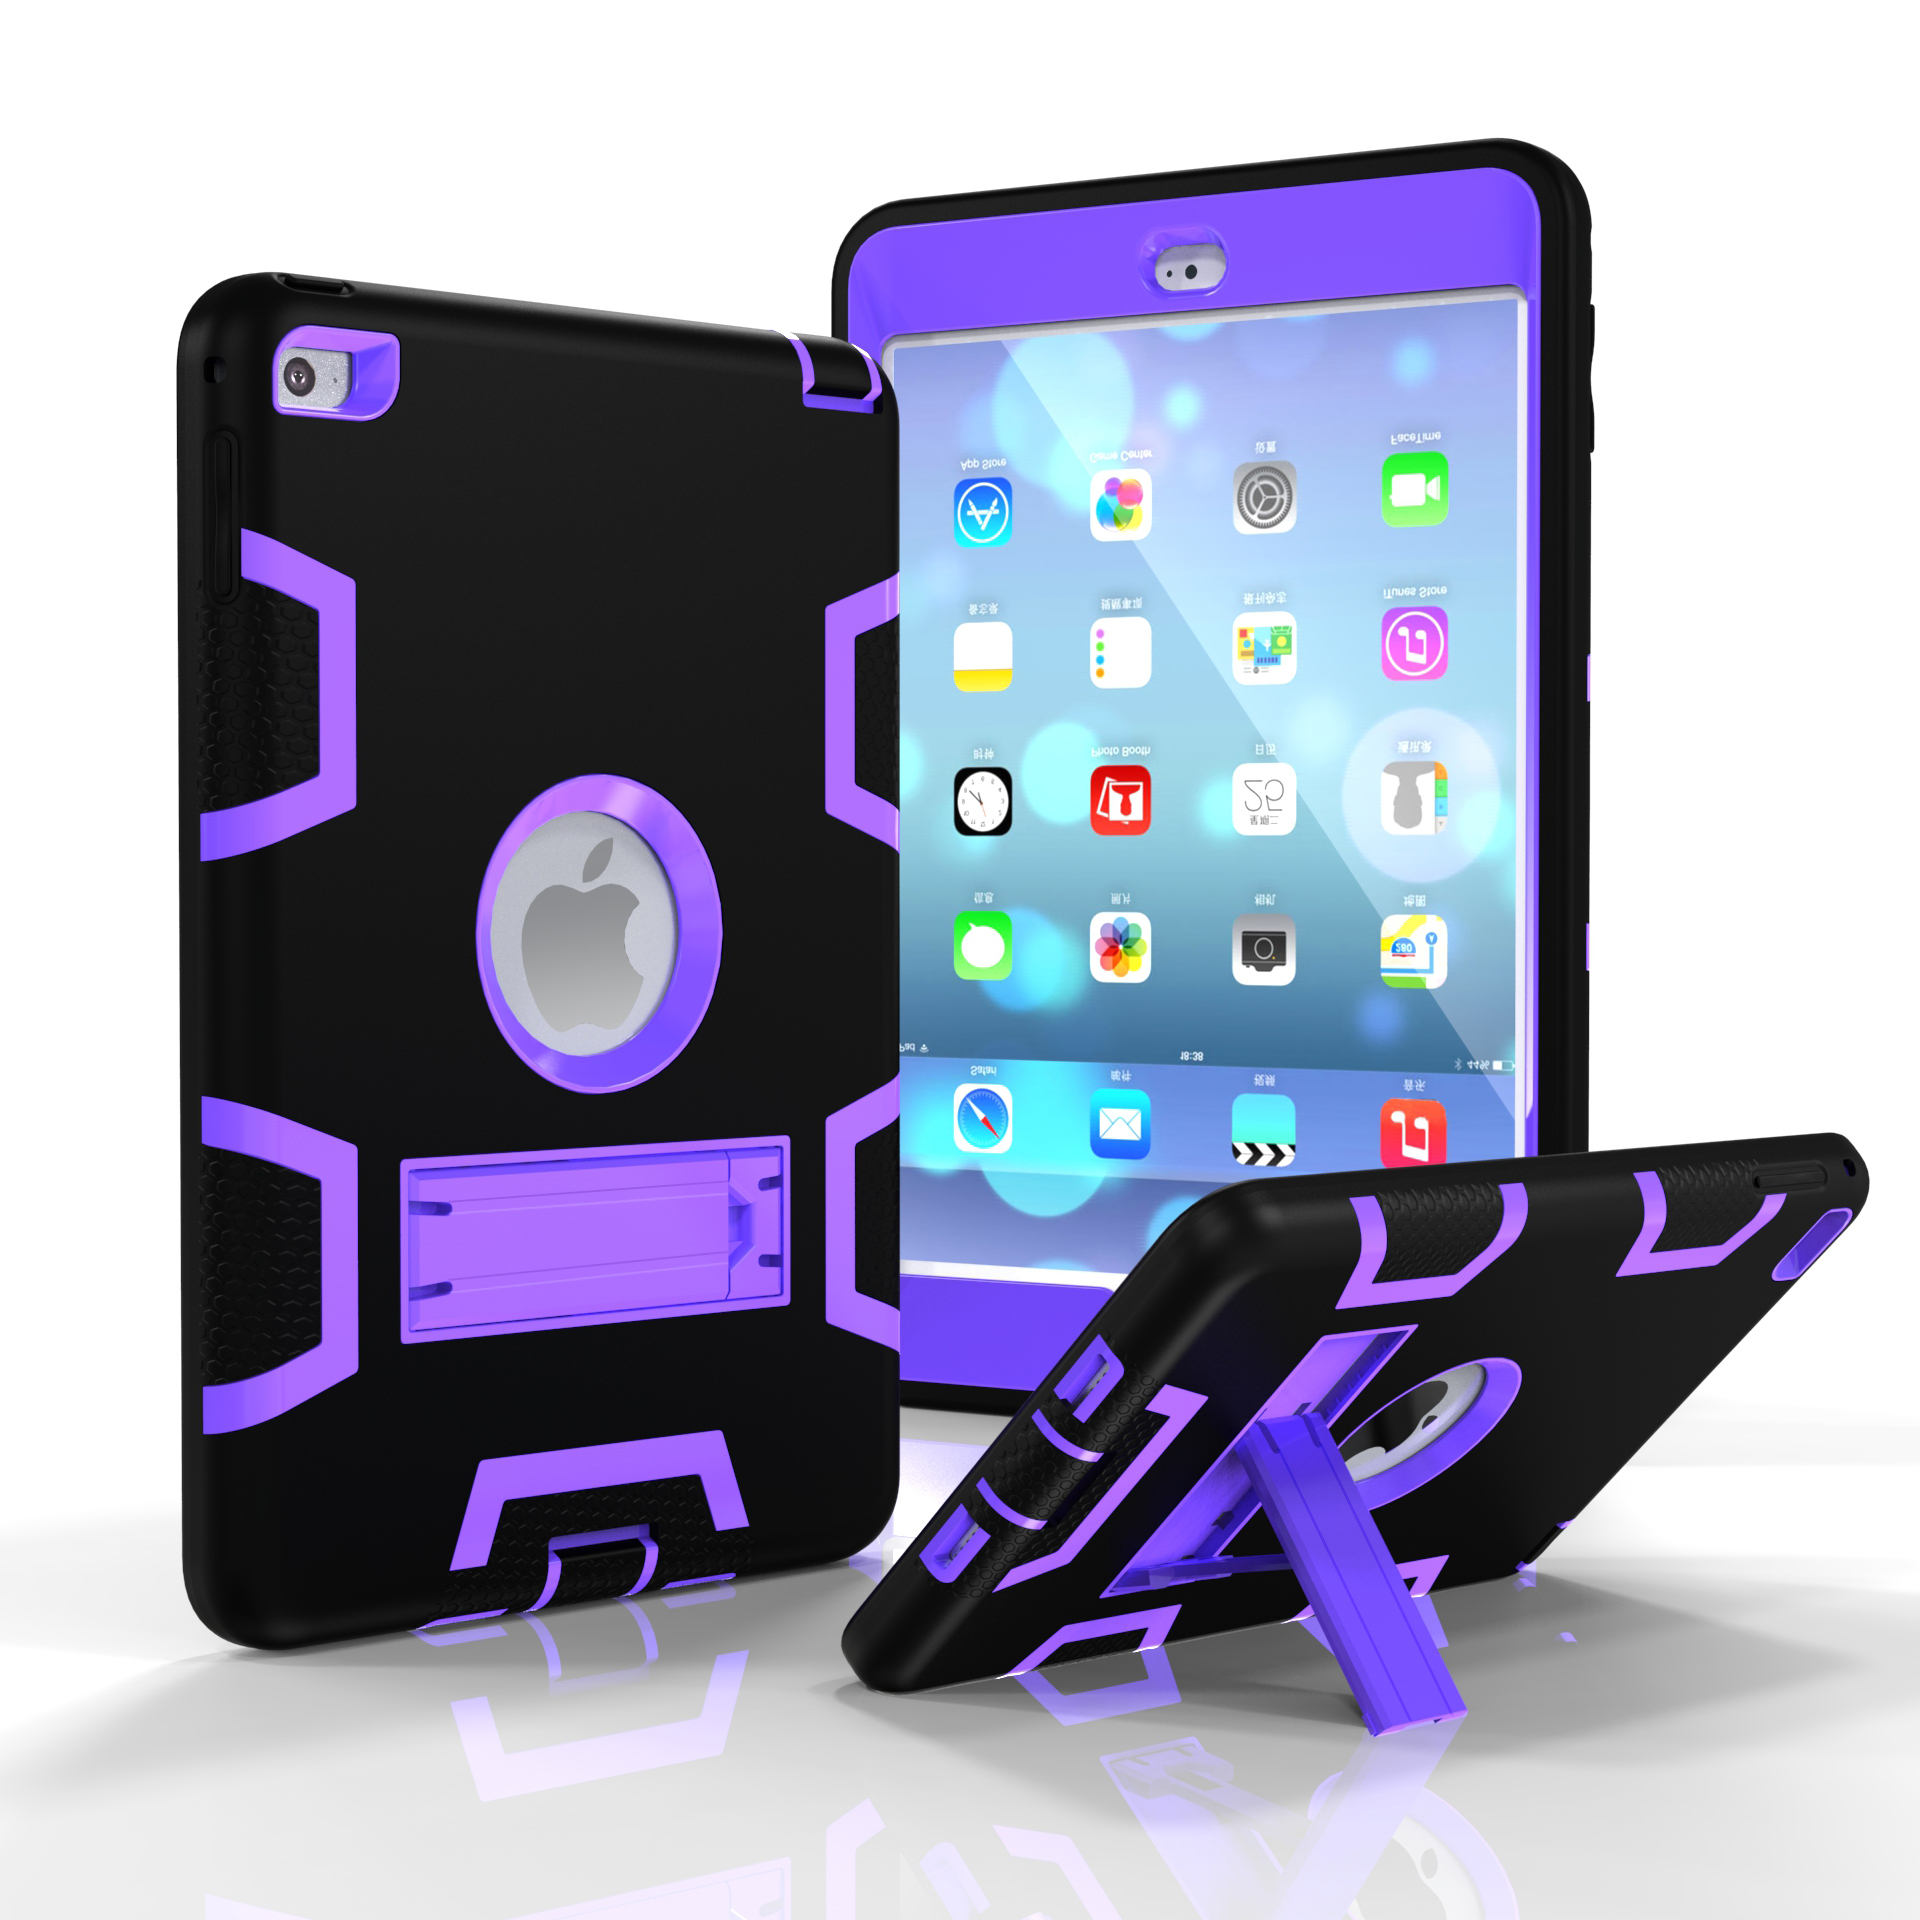 For IPAD MINI 4 PC+ Silicone Hit Color Armor Case Tri-proof Shockproof Dustproof Anti-fall Protective Cover  Black + purple